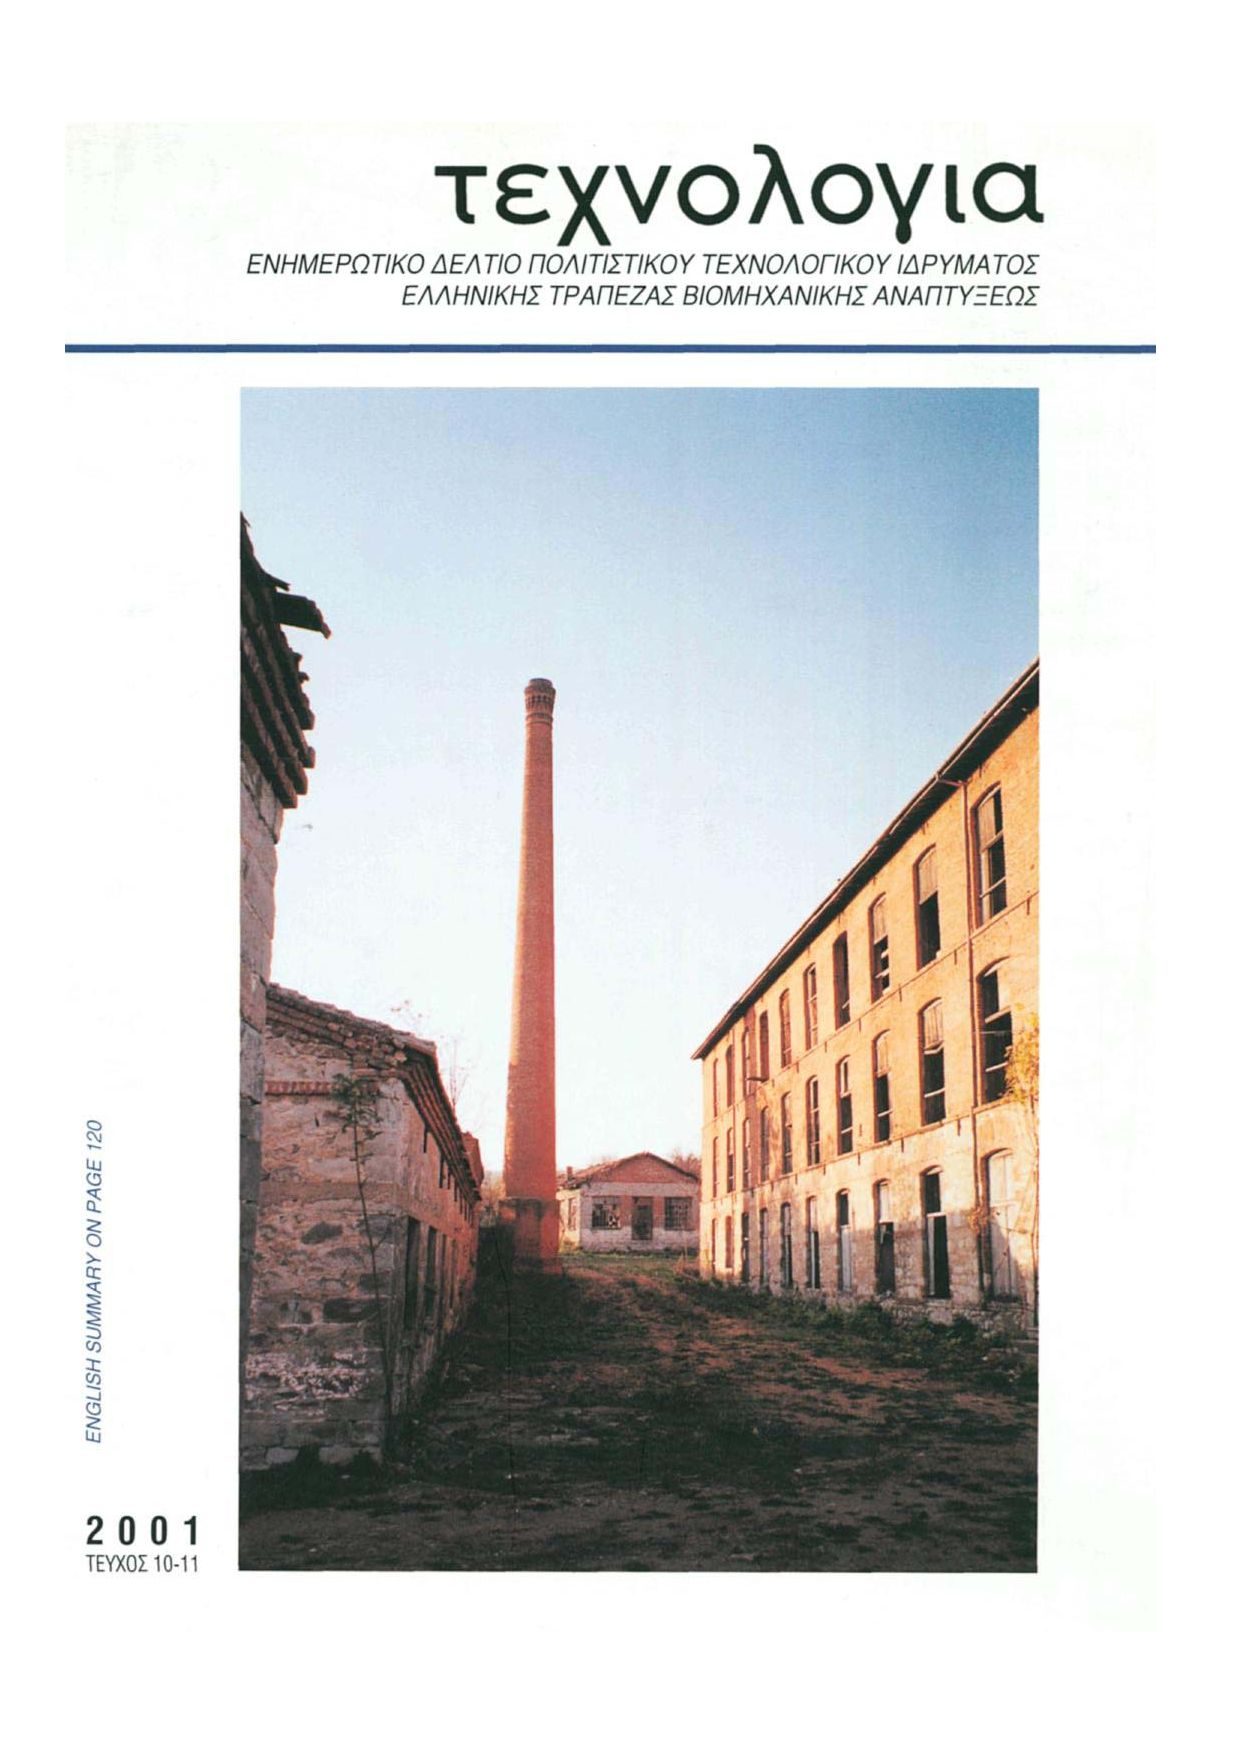 Τεχνολογία Τεύχος 10-11 (2001) by Piraeus Bank Group Cultural Foundation  (PIOP) - issuu d7853592adc